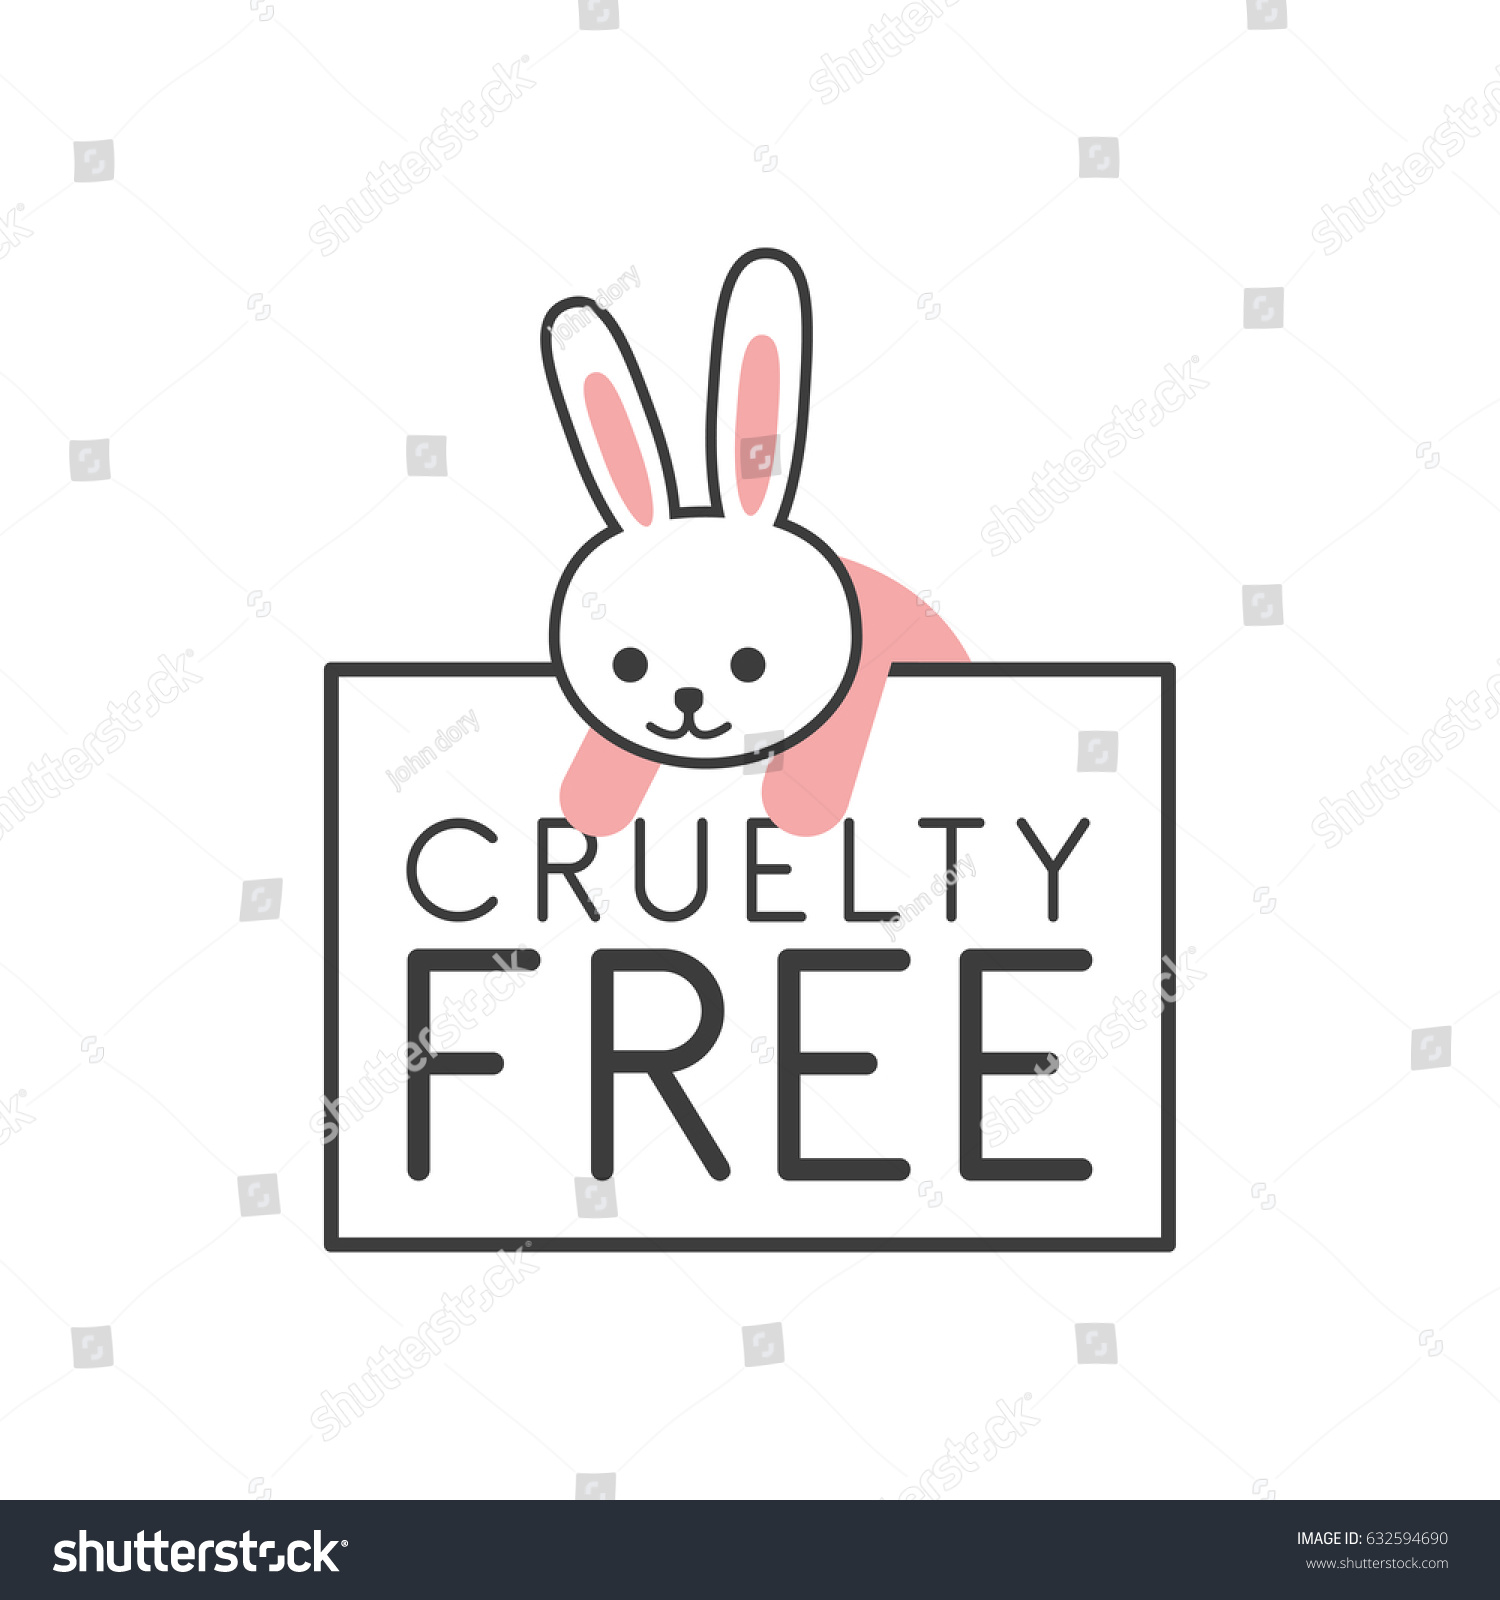 Animal cruelty free symbol can be stock vector 632594690 shutterstock animal cruelty free symbol can be used as sticker logo stamp icon biocorpaavc Gallery